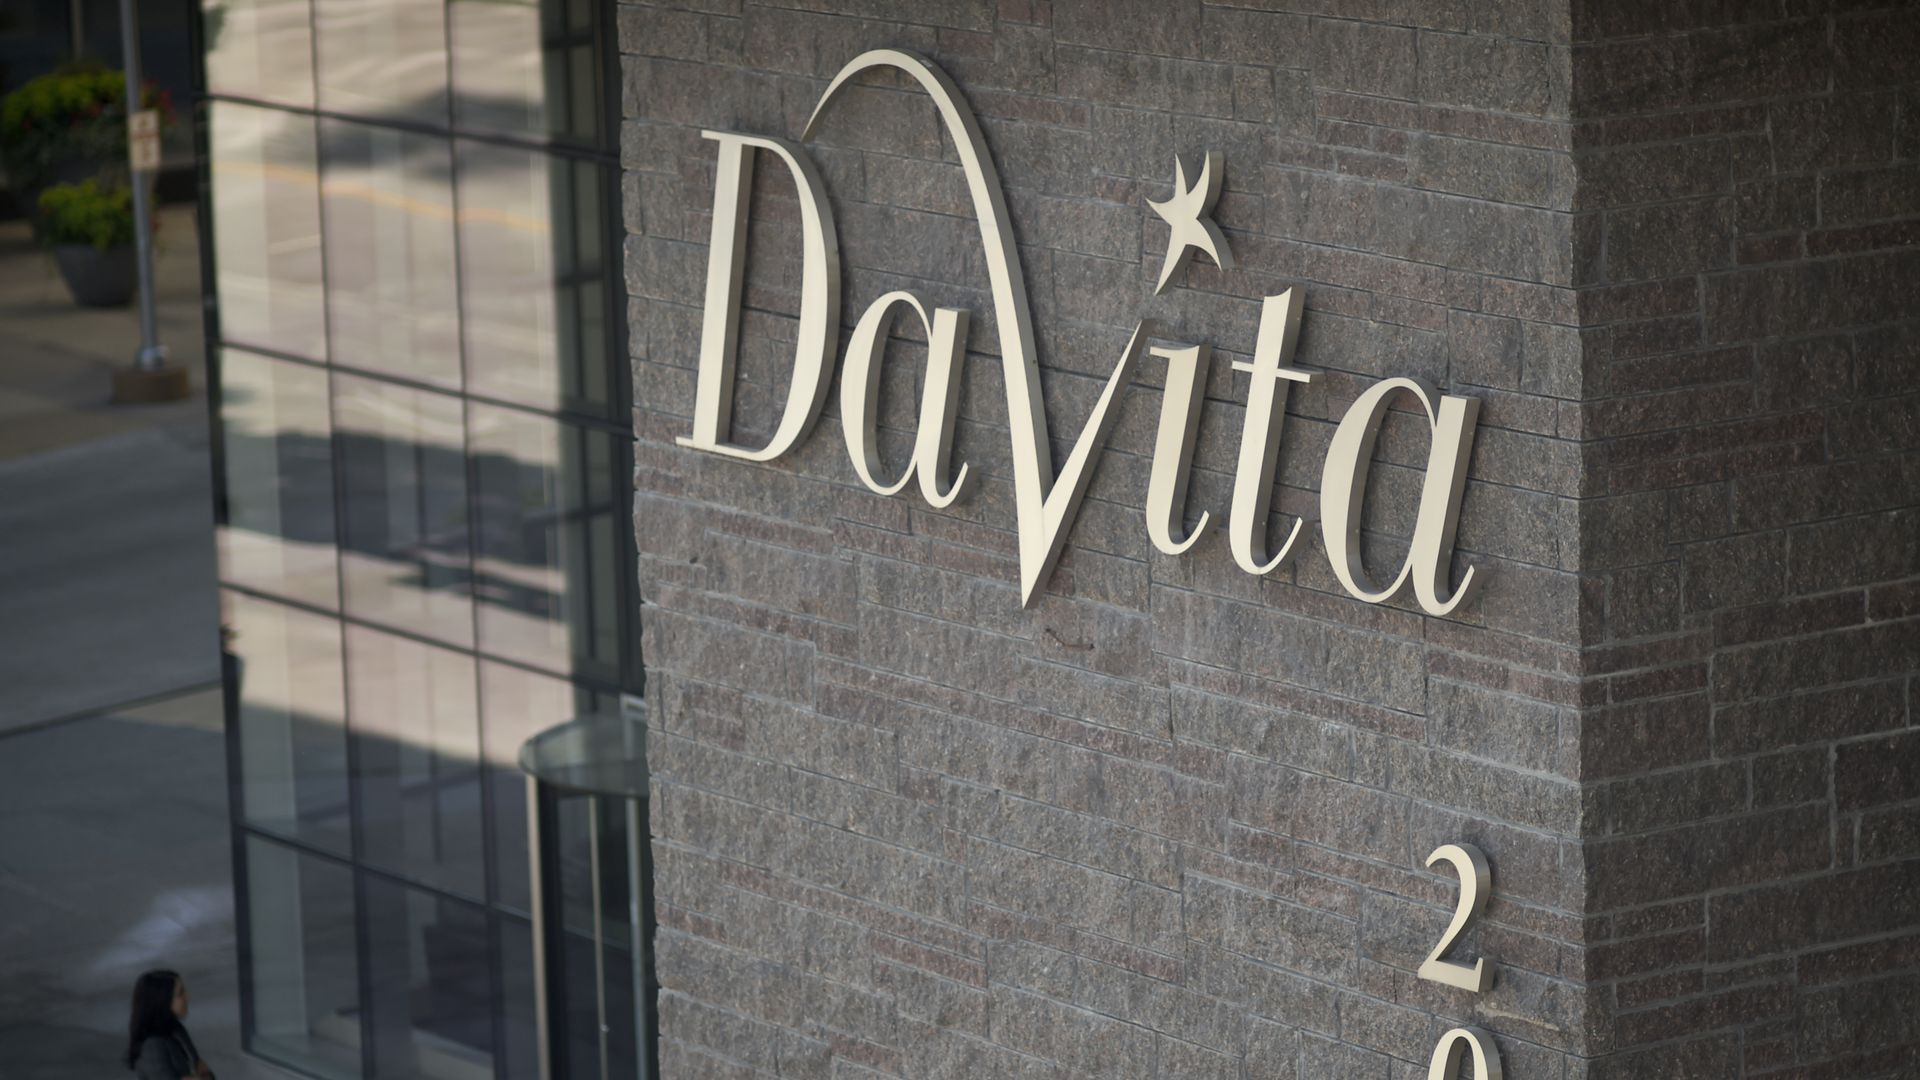 DaVita's headquarters building.